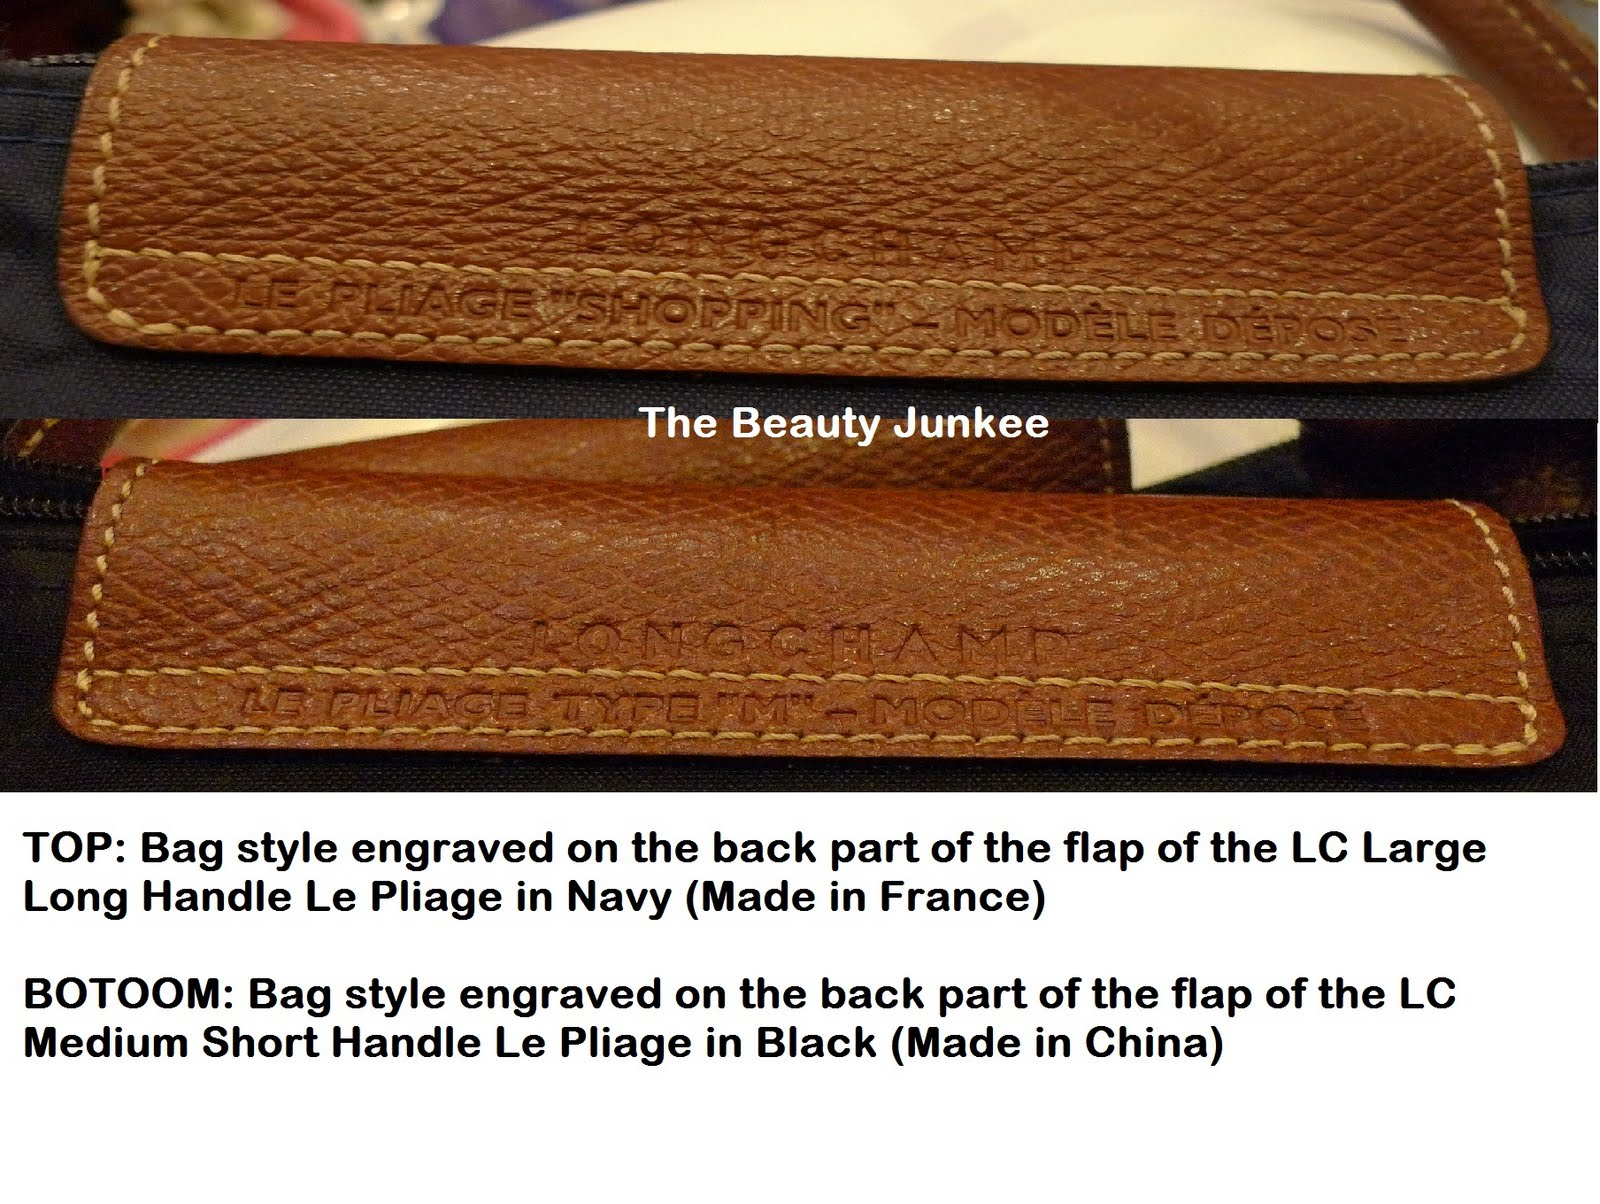 dff6465cb5ea ON FRENCH AND CHINESE LE PLIAGES+AUTHENTICATE YOUR LE PLIAGE